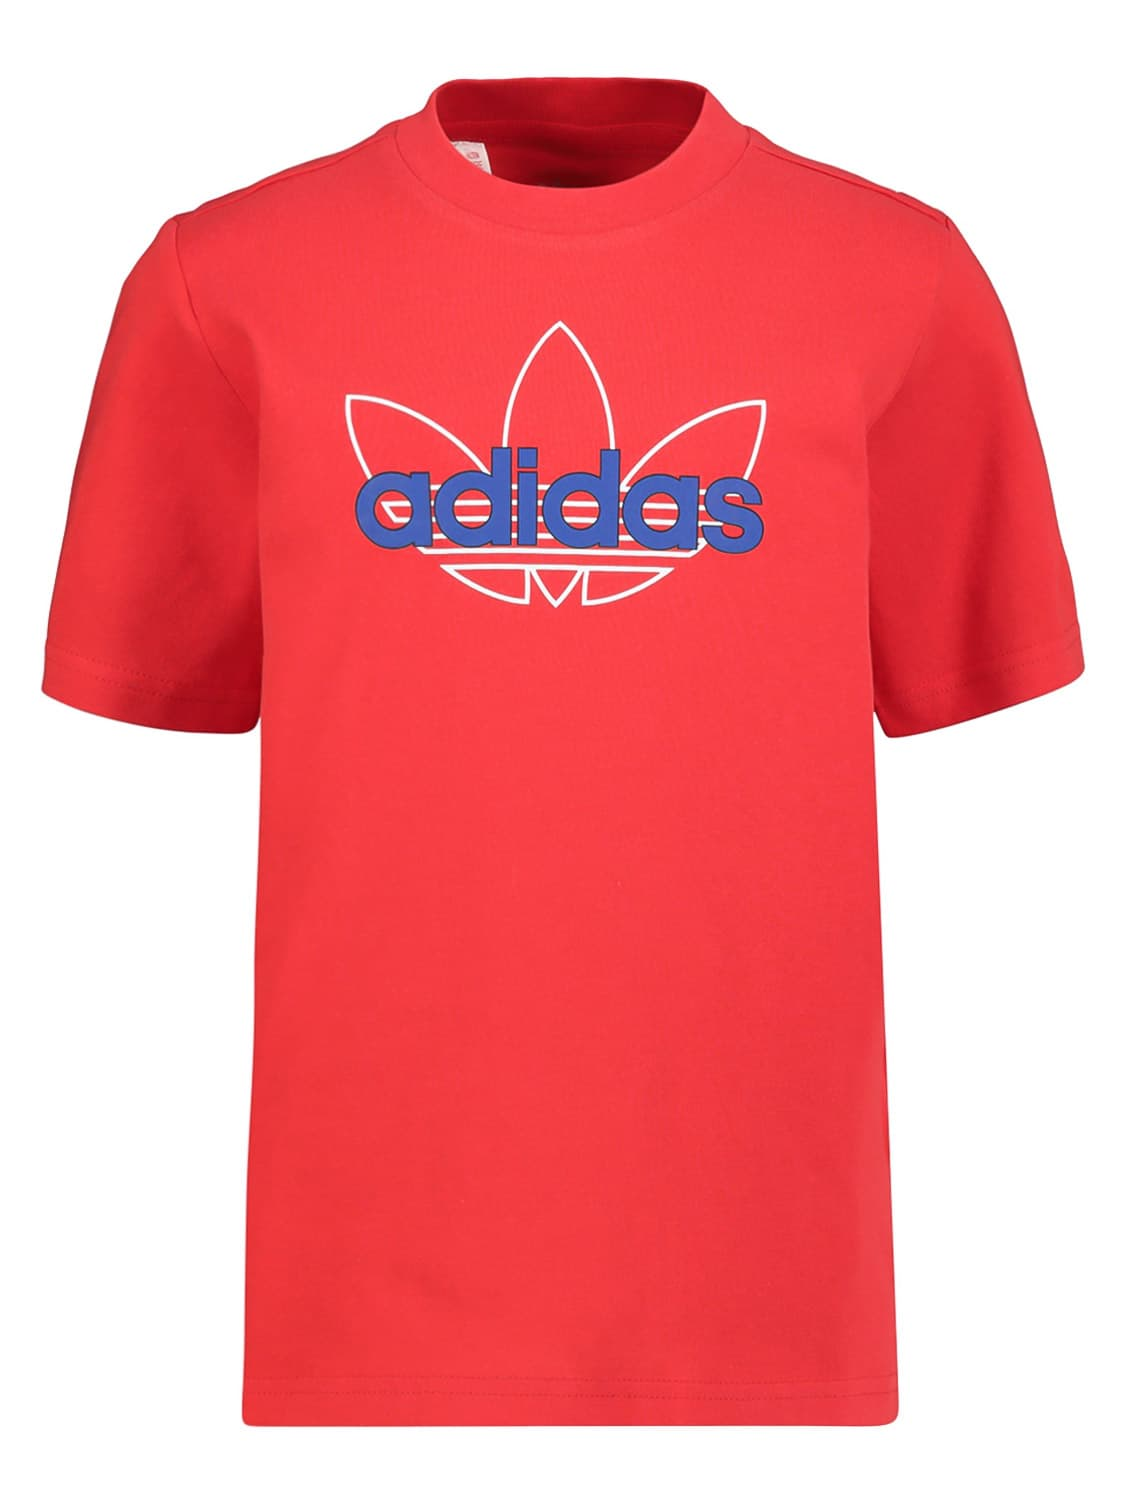 Adidas Originals Clothing KIDS T-SHIRT TEE FOR FOR BOYS AND FOR GIRLS